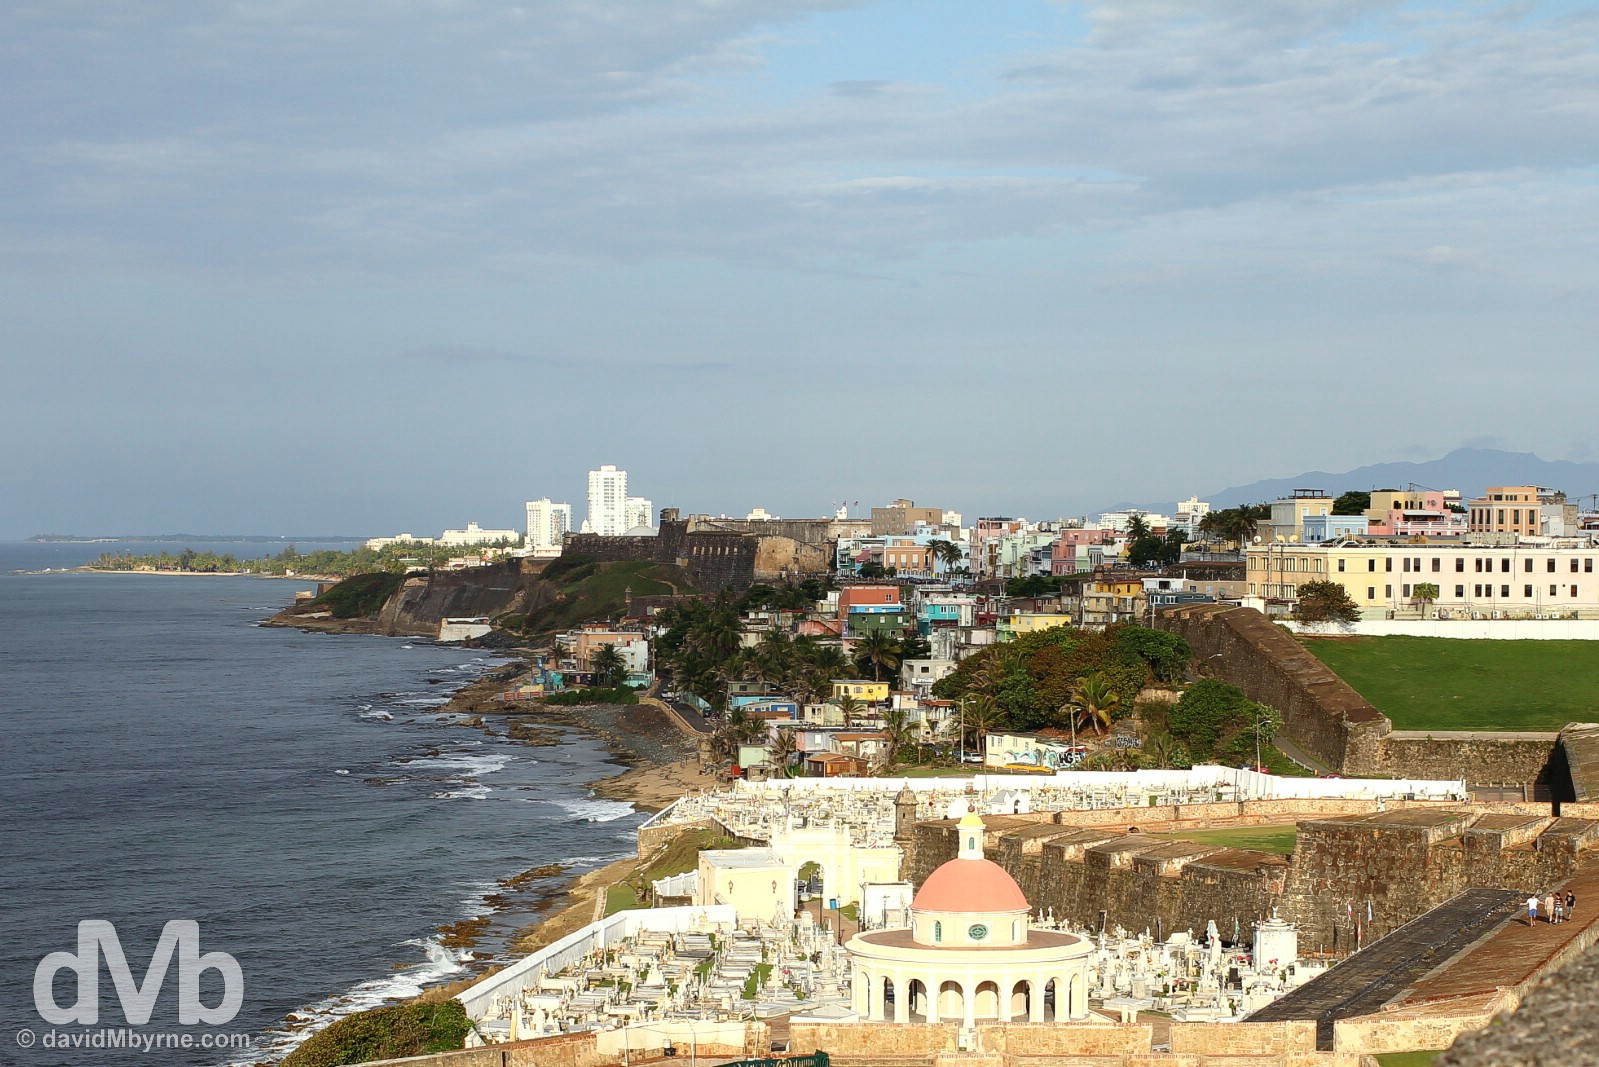 The northern, Atlantic-facing coast of the San Juan Islet as seen from the ramparts of Castillo San Felipe del Morro in Viejo (Old) San Juan, Puerto Rico, Greater Antilles. June 2, 2015.